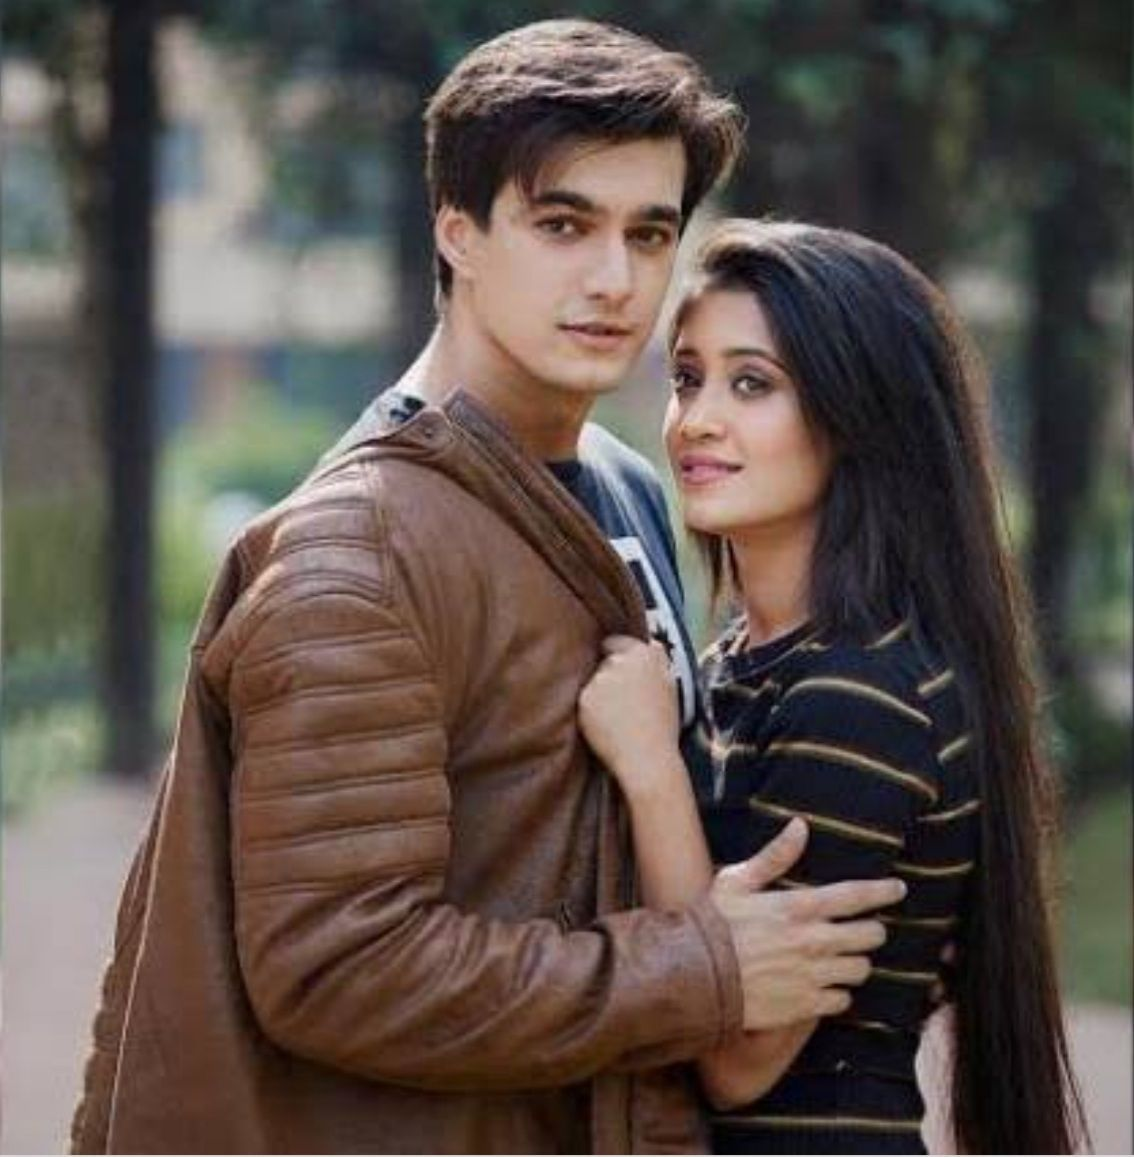 Khushi's Half Brother - Raahil Khan( Plays Cricket for Pakistan) + His Lady Love - Noor